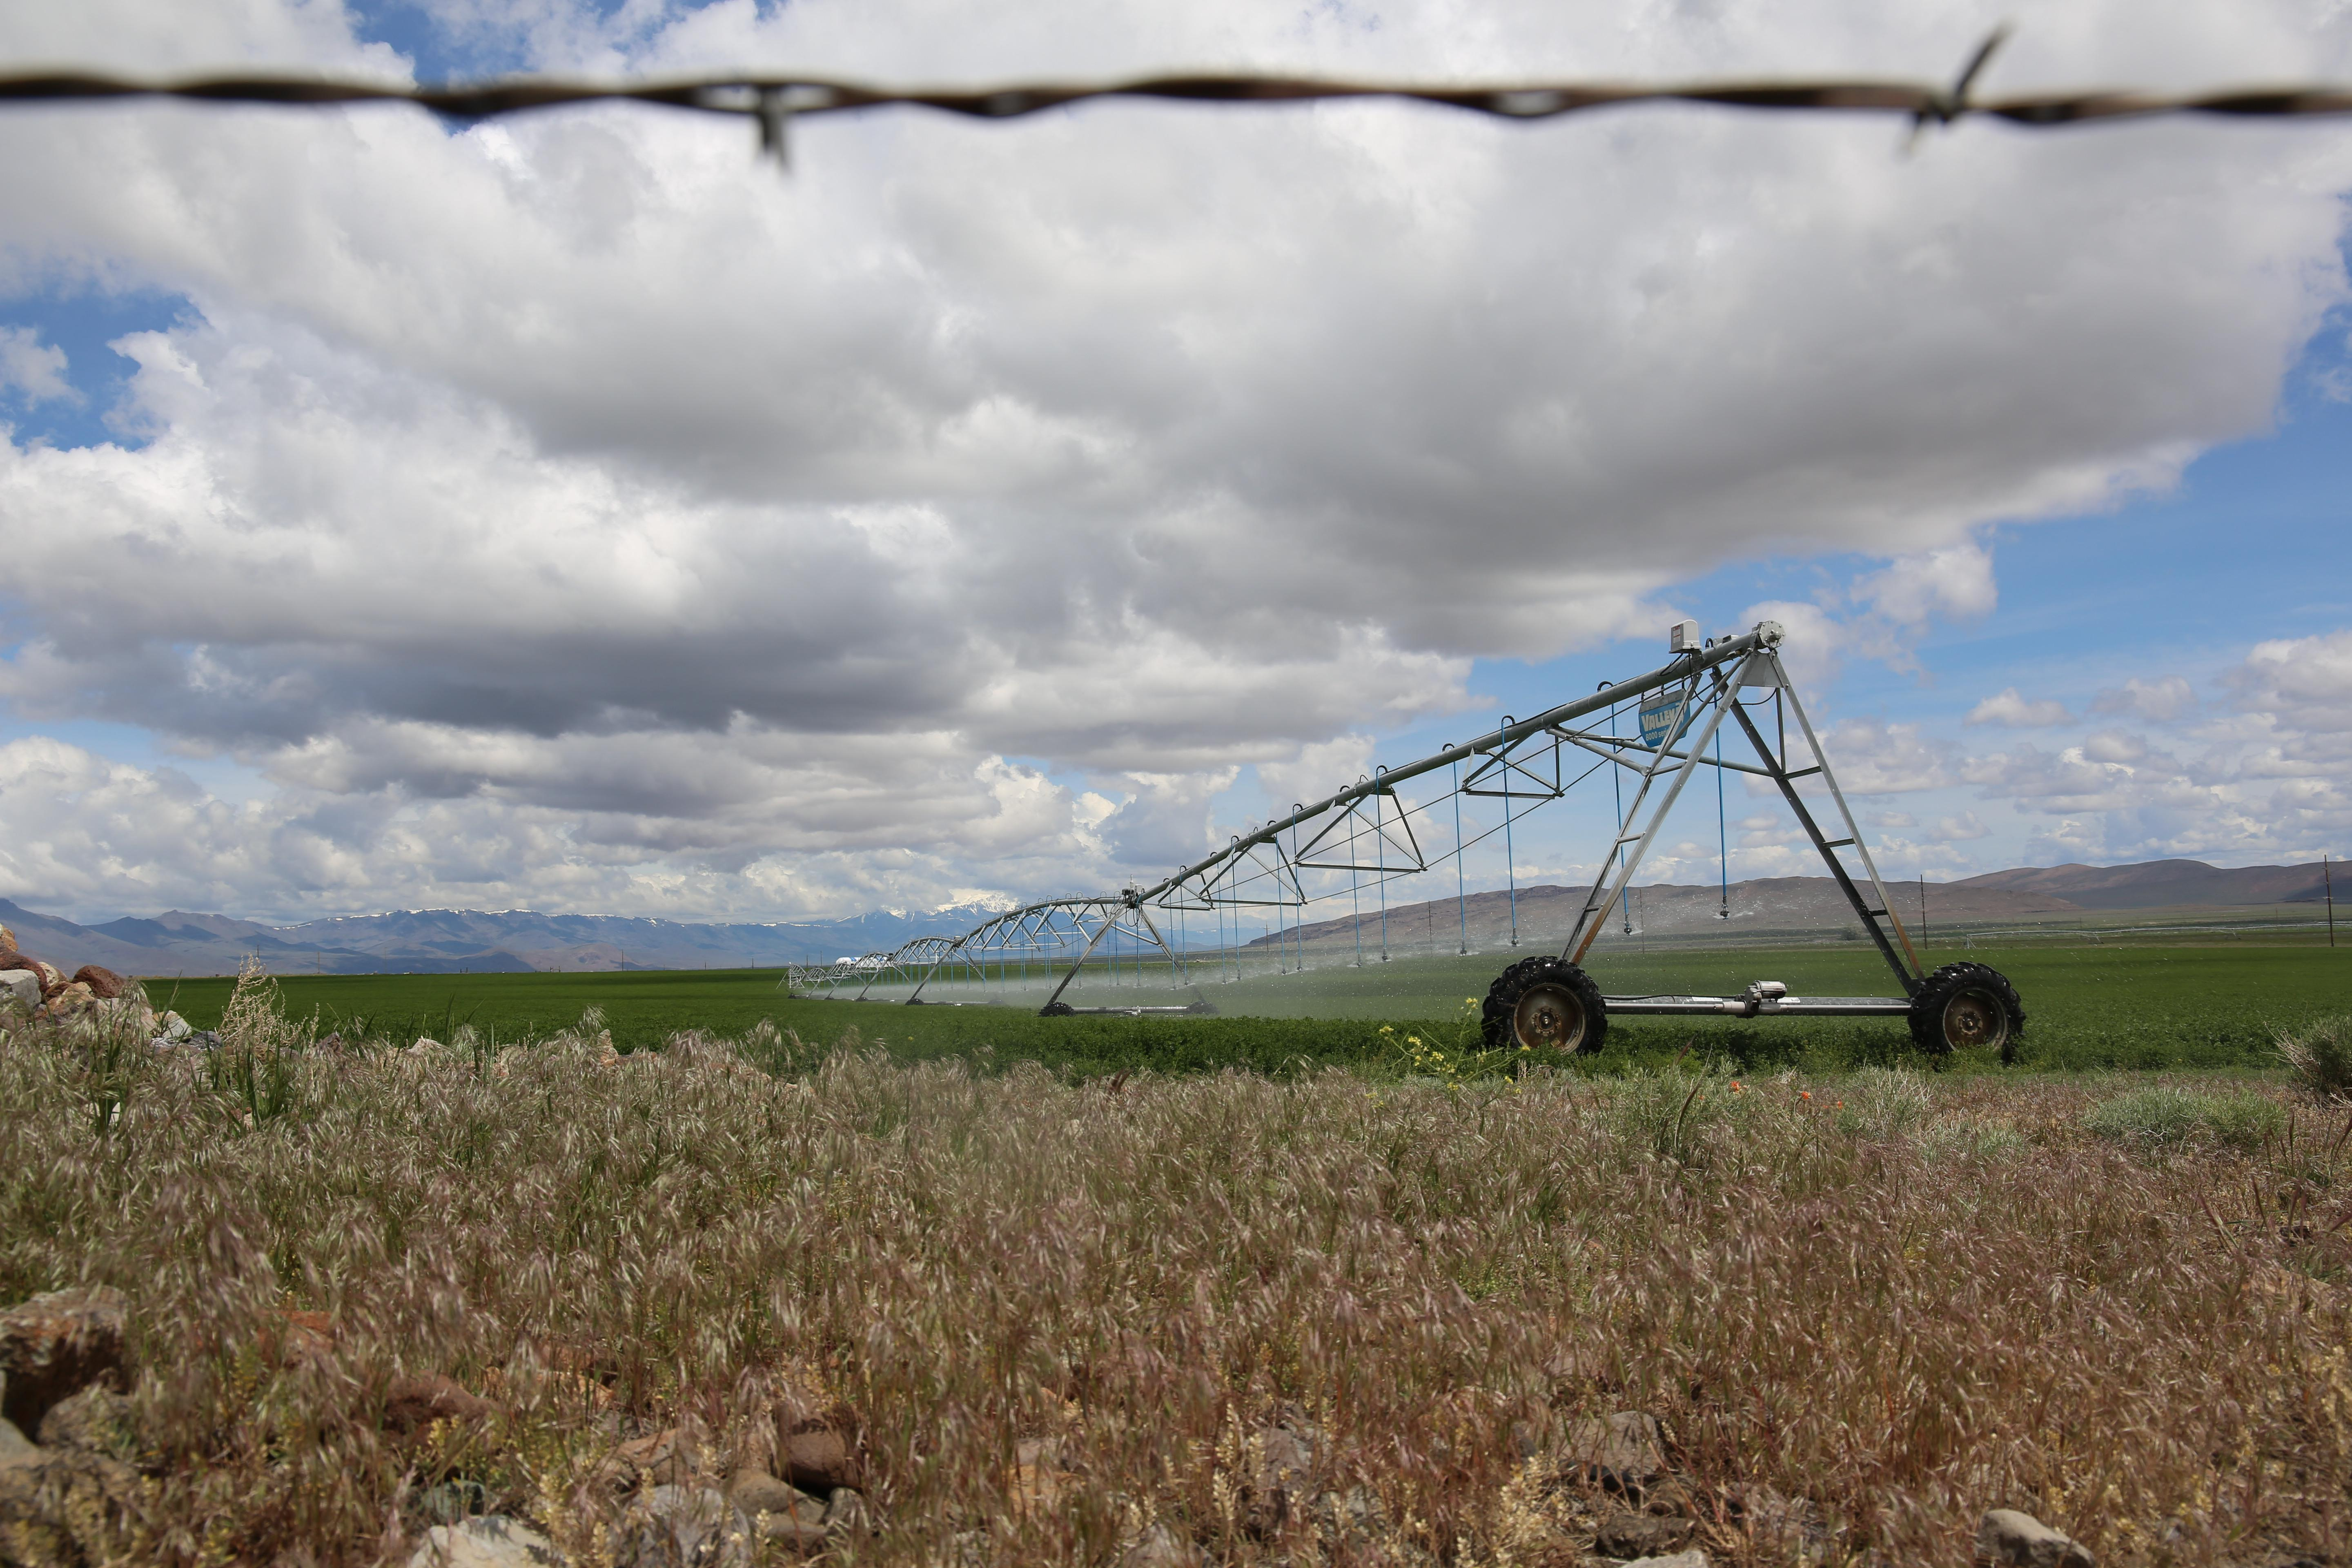 The hay grown in southeastern Oregon's Harney County feeds a global livestock market. But the industry relies on declining groundwater stores.